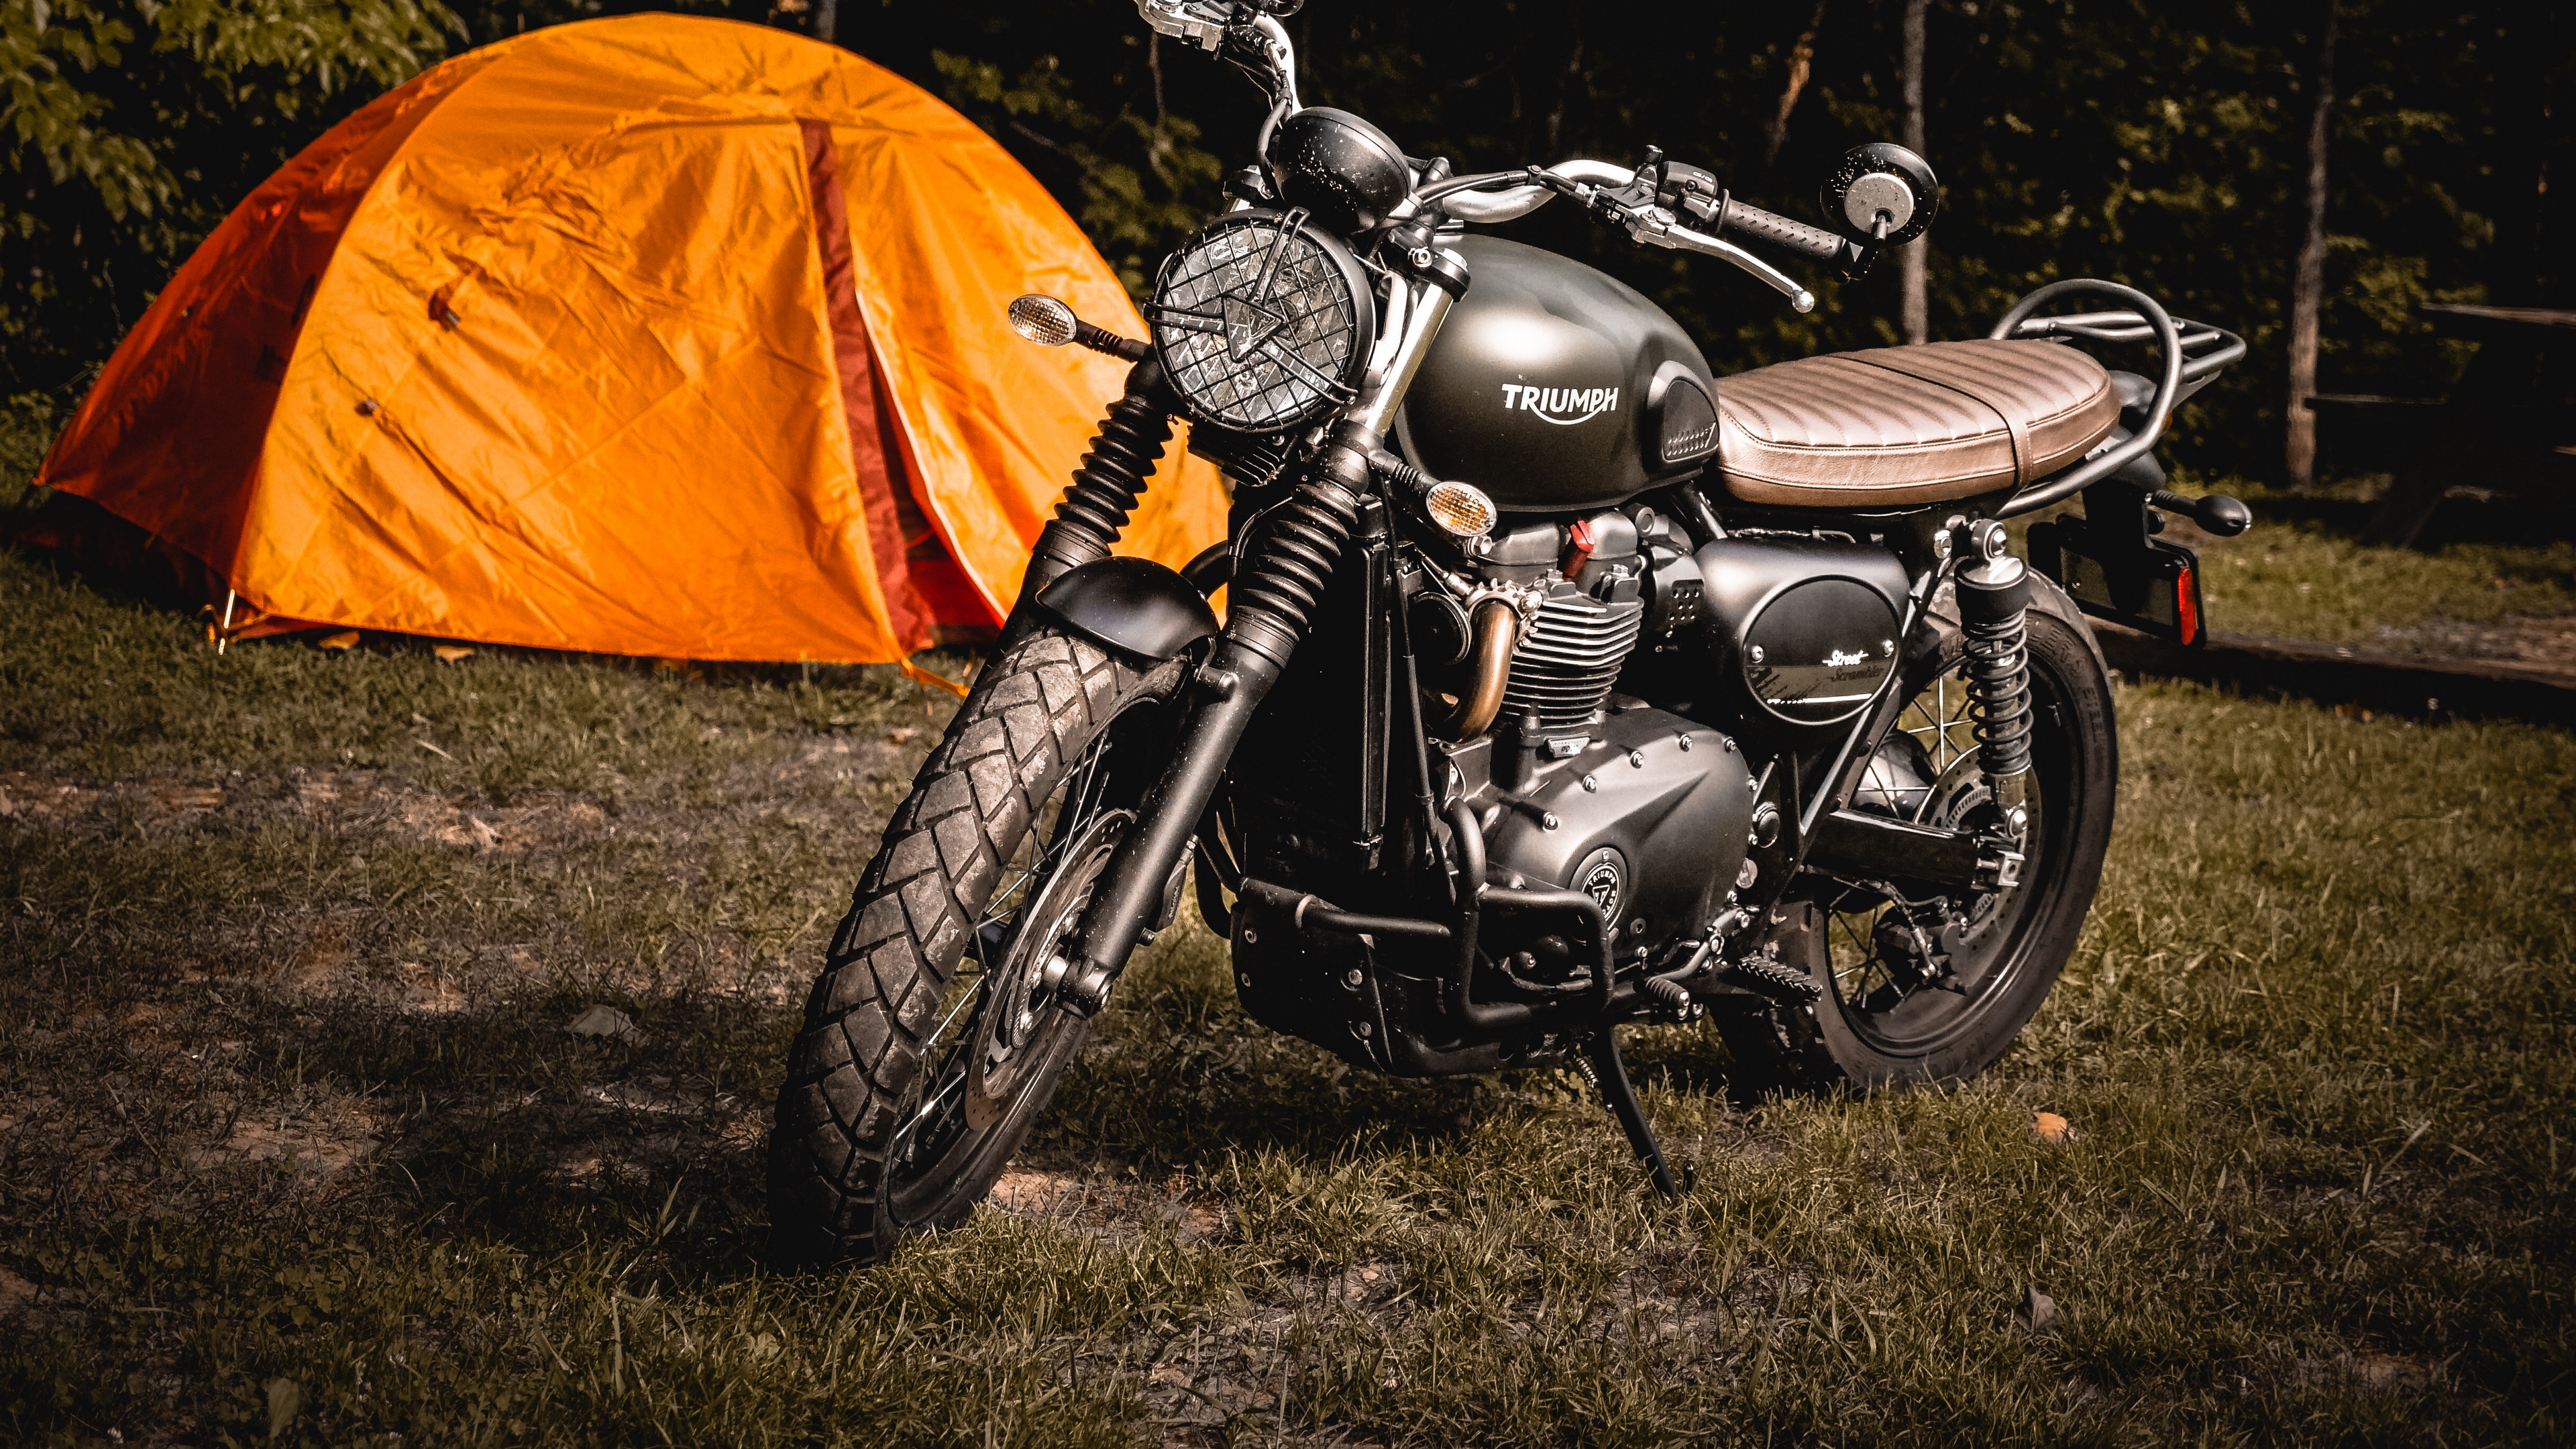 motorcycle tent grass 4k 1536018850 - motorcycle, tent, grass 4k - tent, Motorcycle, Grass